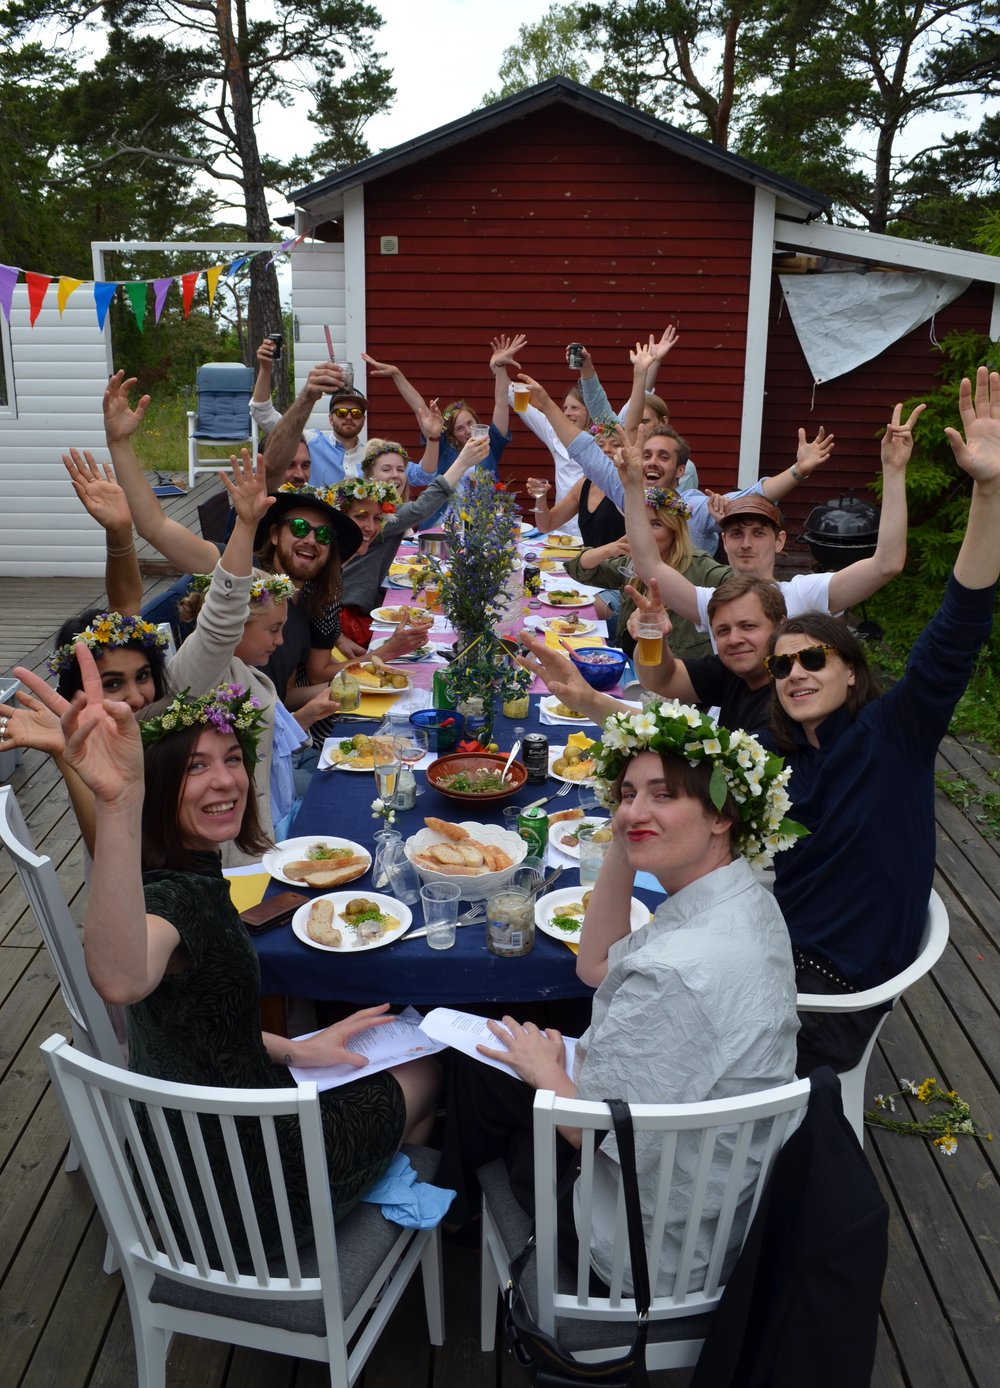 Midsummer lunch with friends!